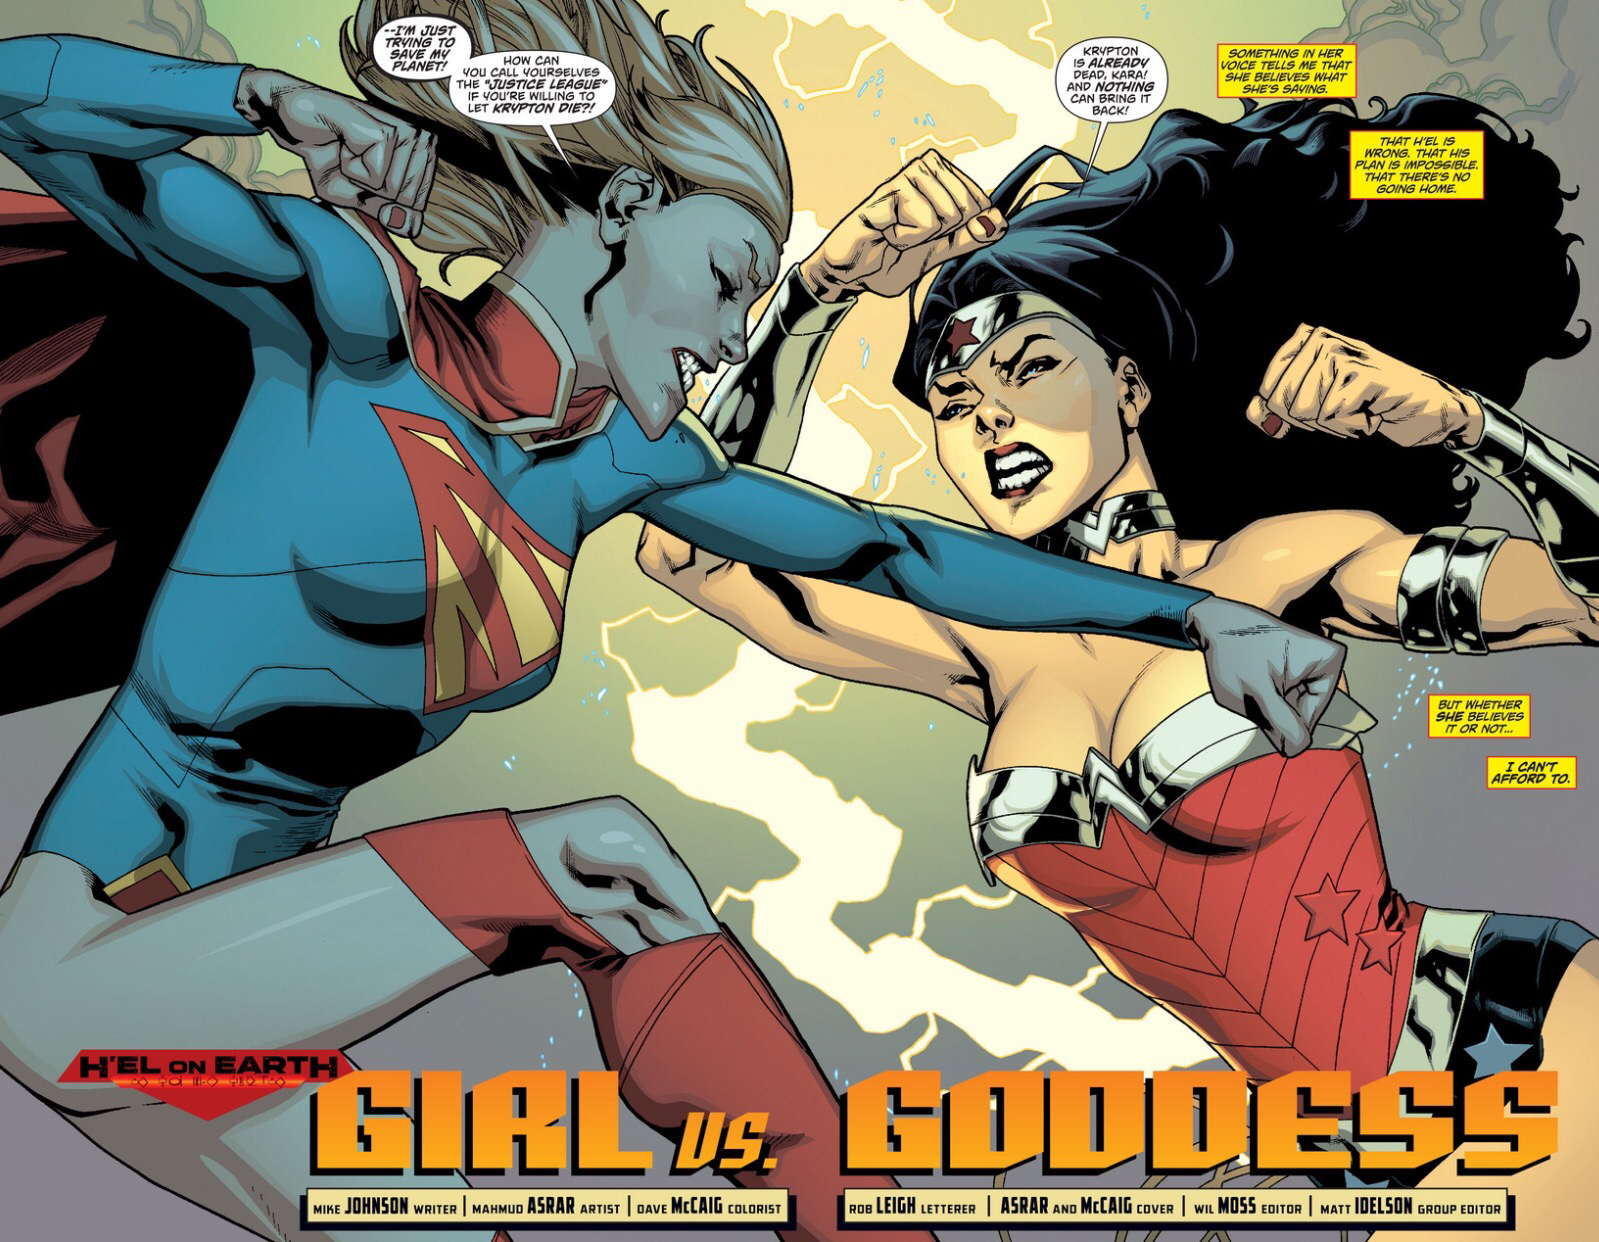 Wonder Woman vs. Supergirl